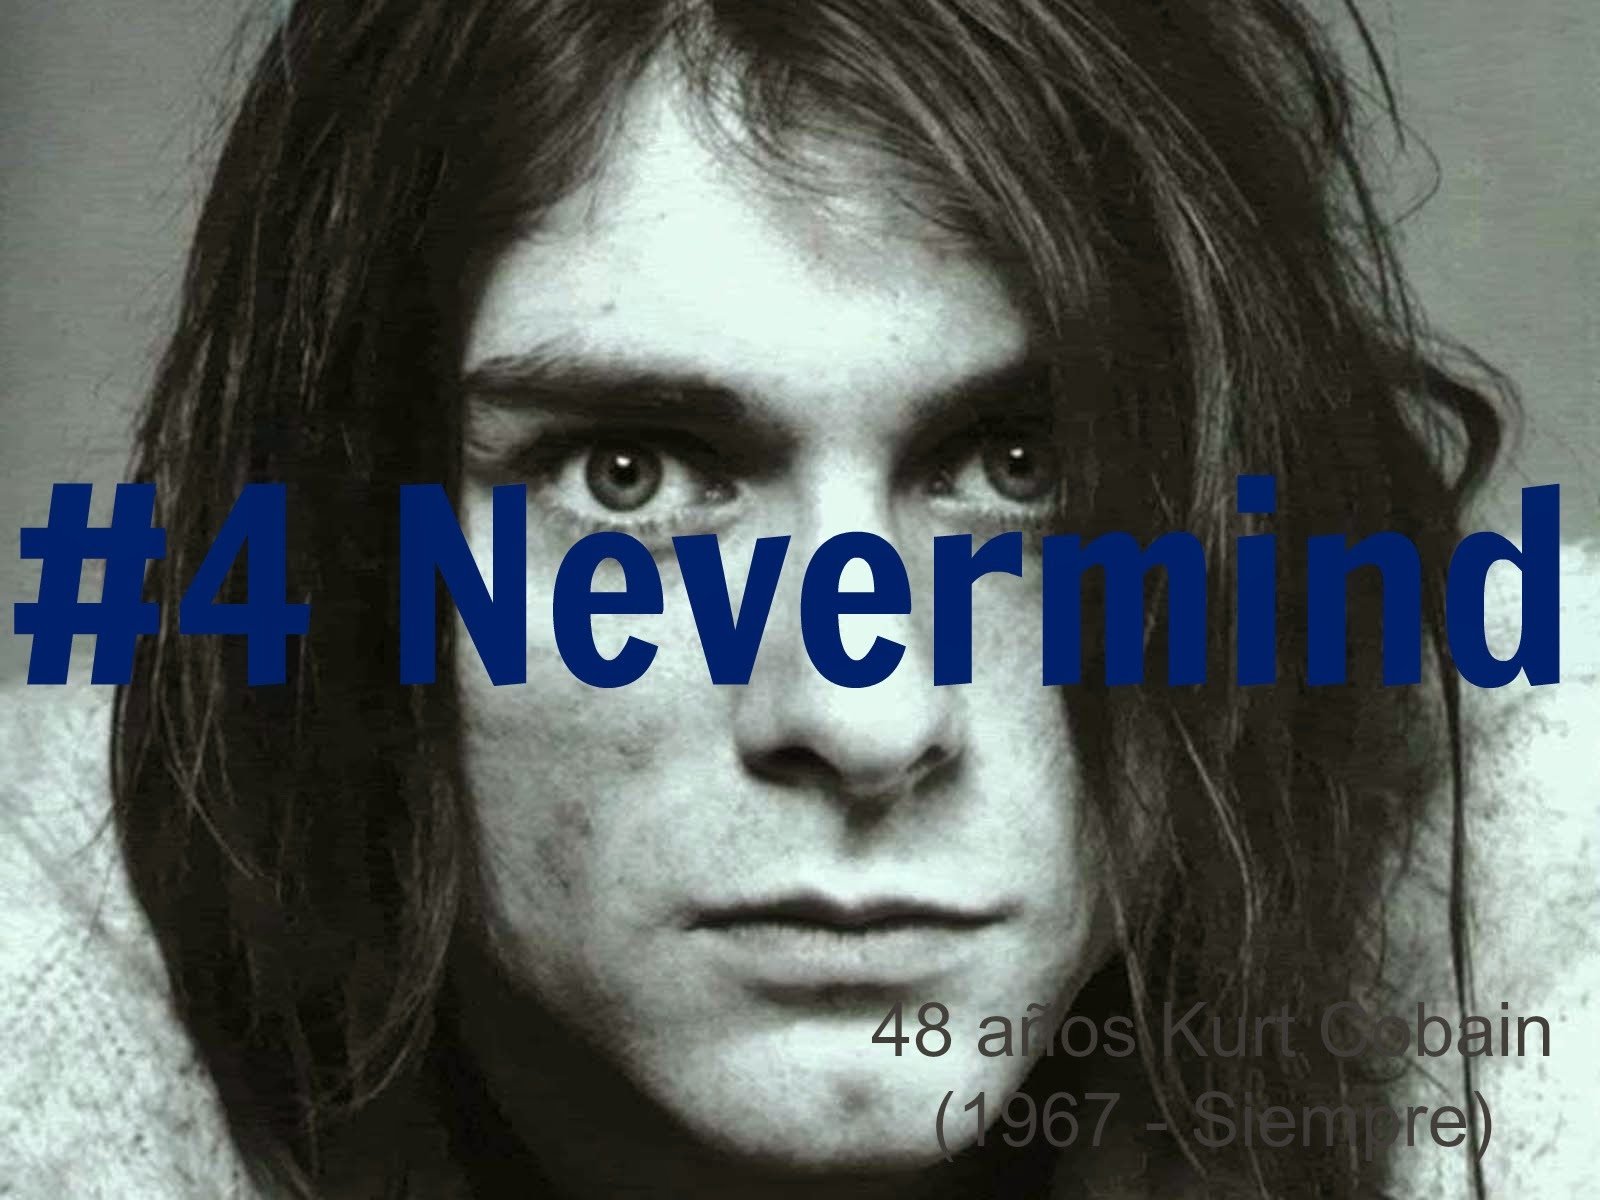 http://indie-lioness.blogspot.com/2015/02/playlist-4-nevermind.html